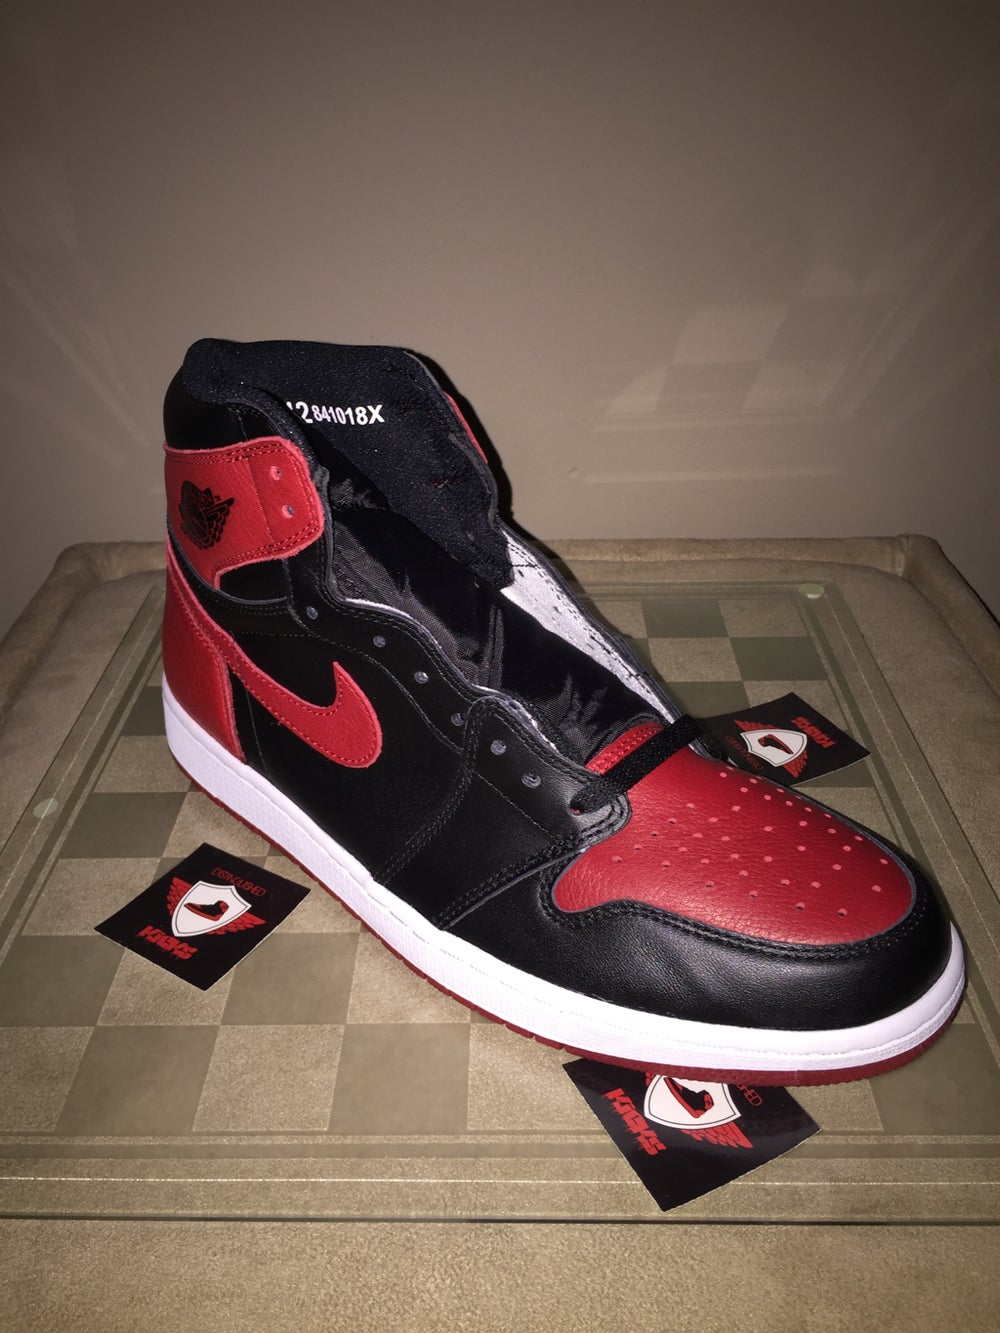 official photos c91a9 601c2 ... Image of Air Jordan 1 Retro High OG